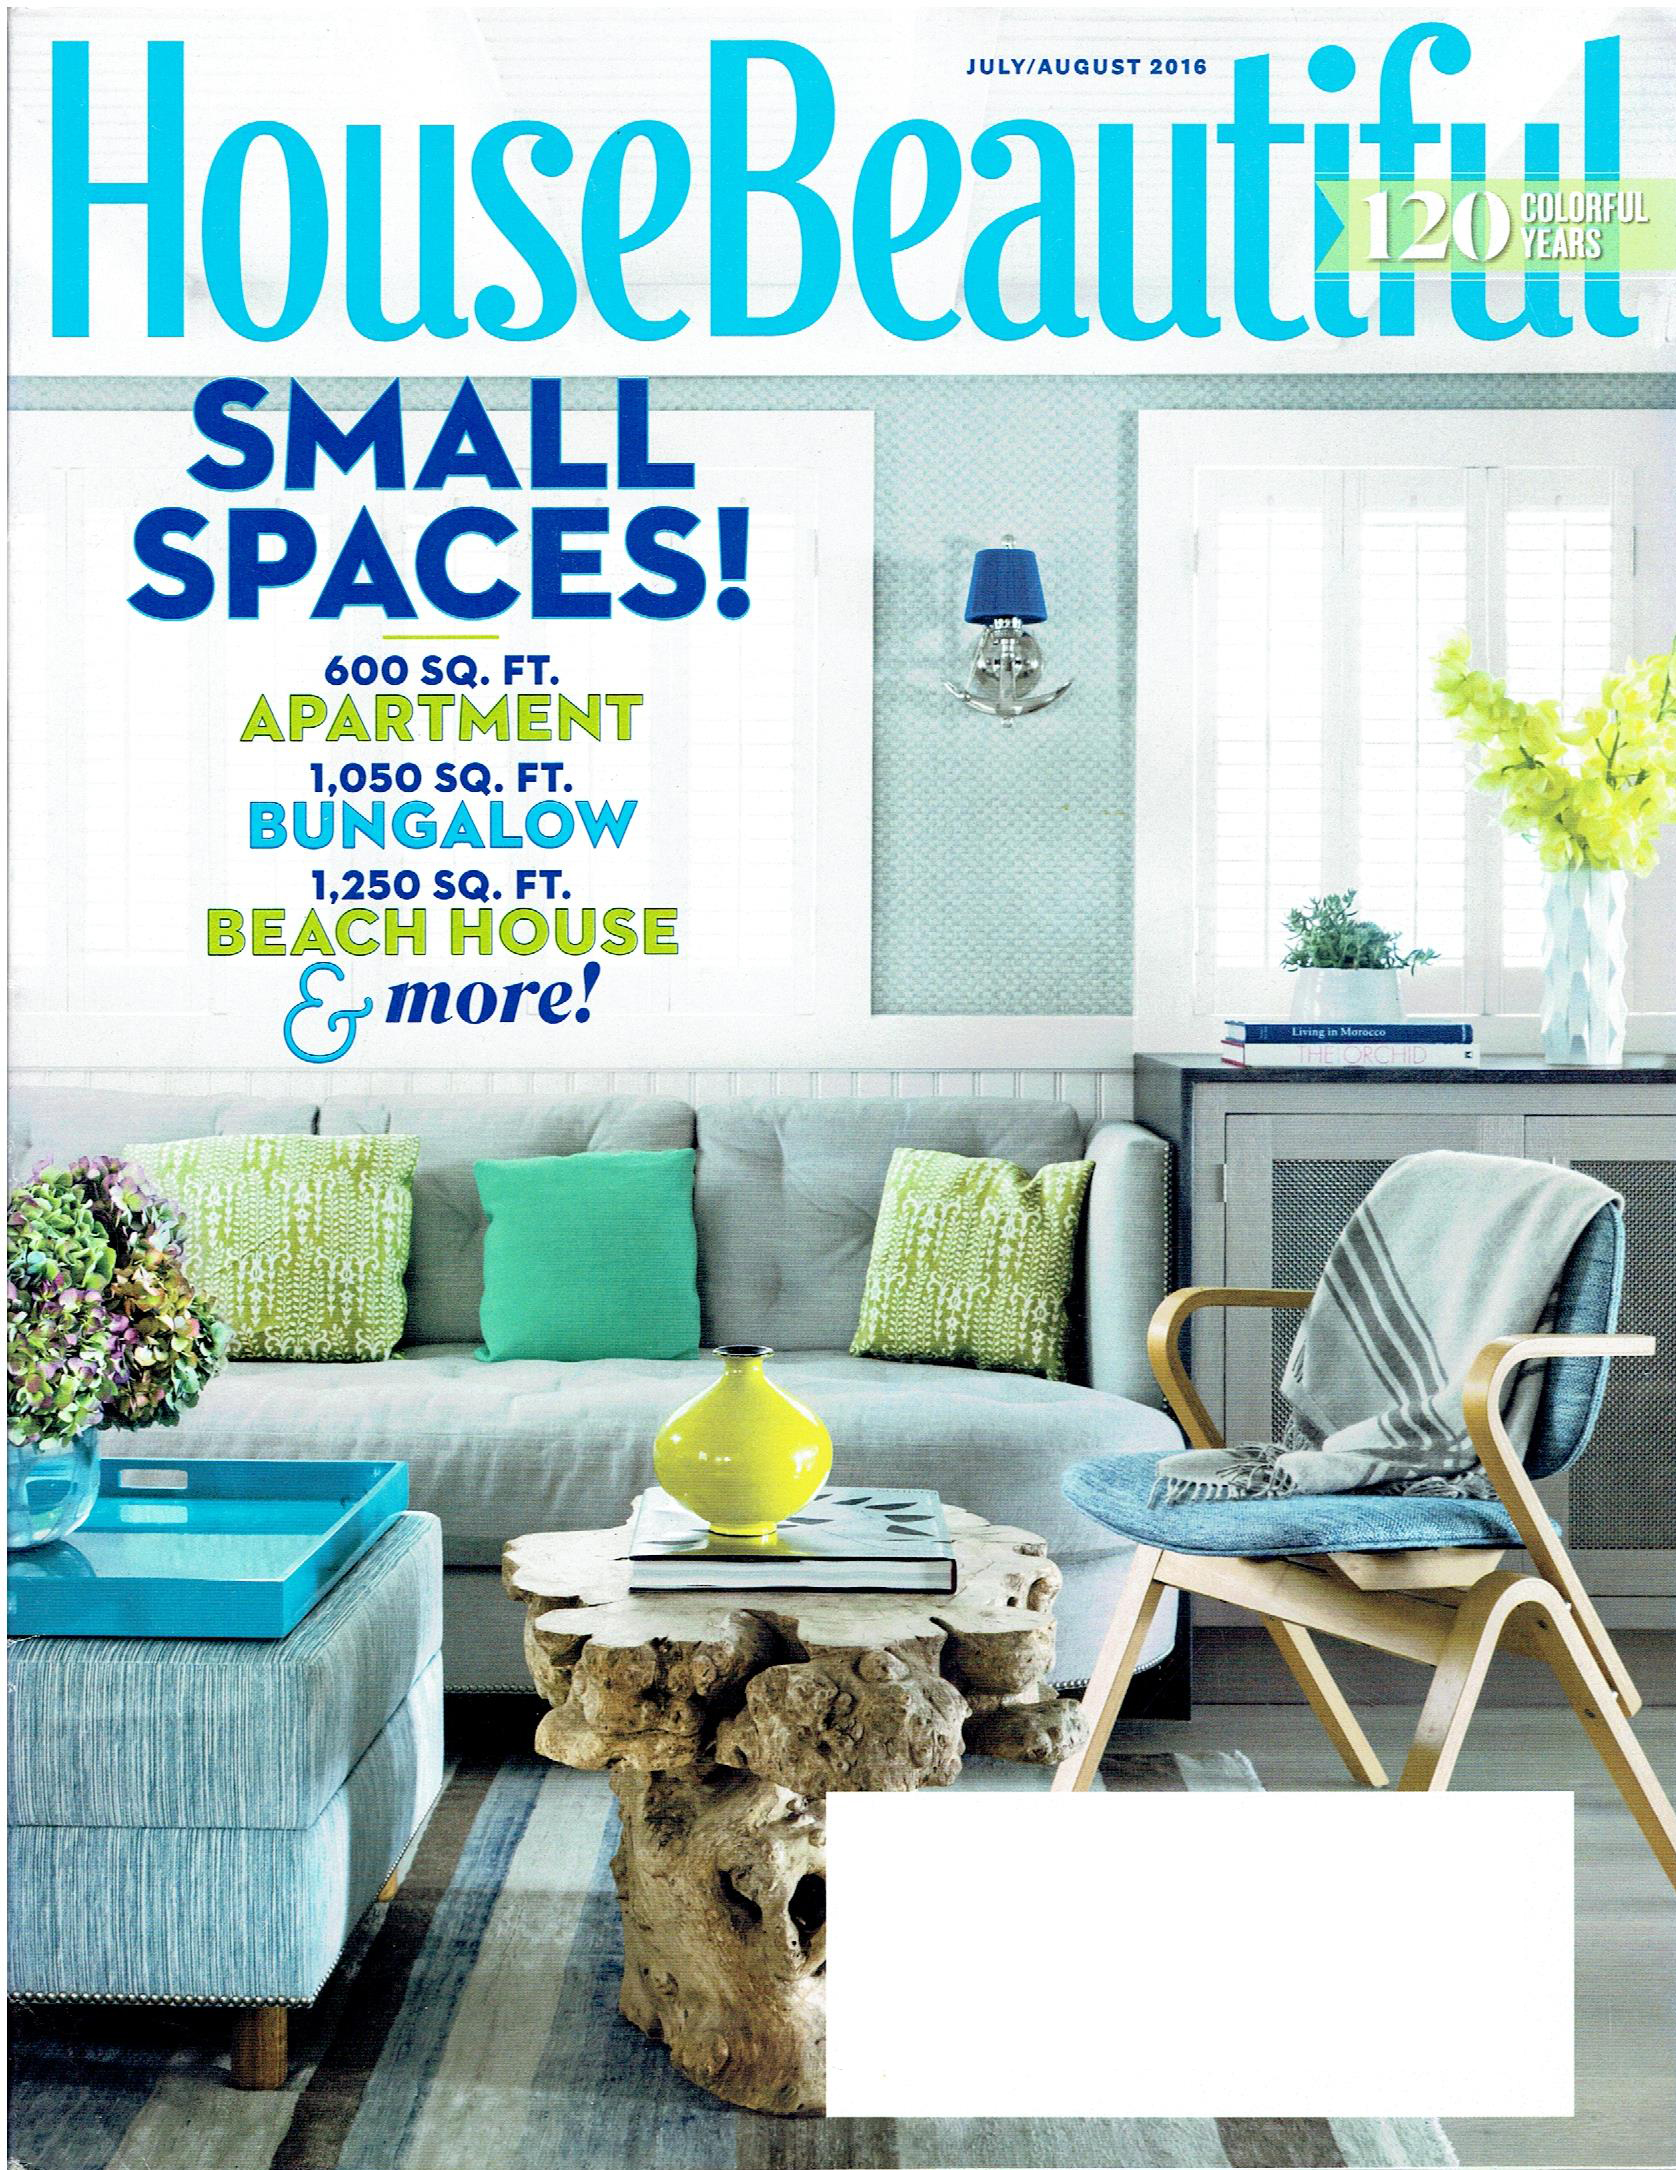 House Beautiful July/August 2016